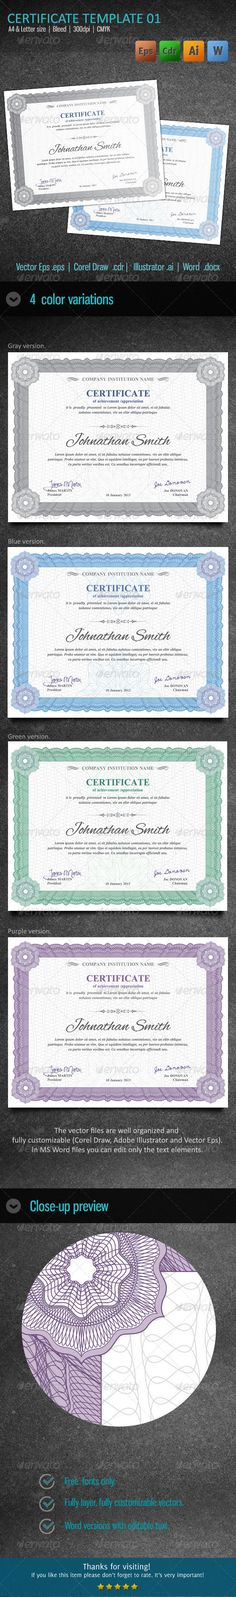 82 Best Print Templates images in 2014 | Print templates